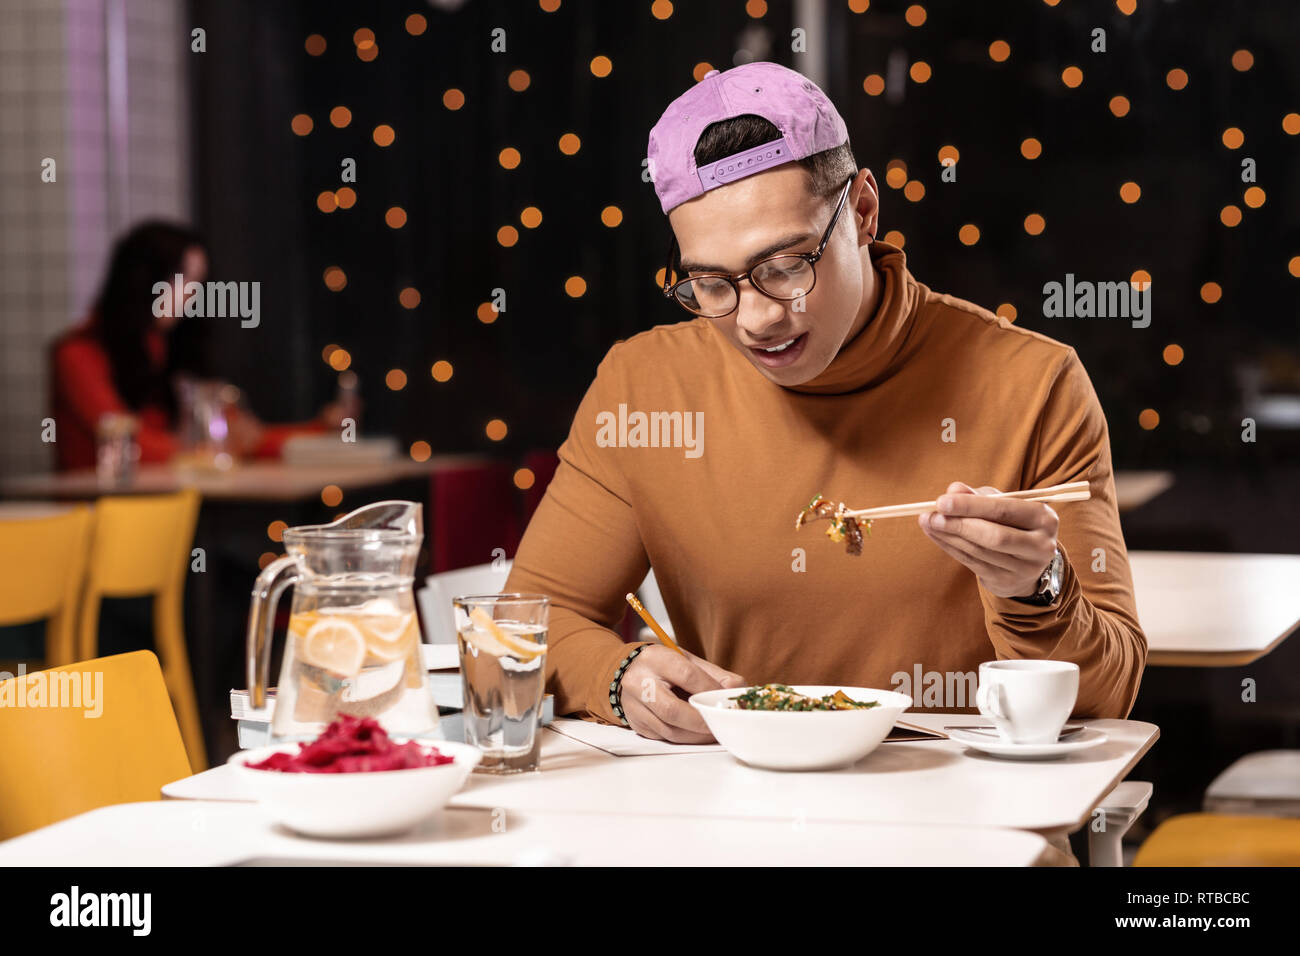 Customer feeling unhappy about ordered dish in restaurant and holding it with chopsticks. - Stock Image